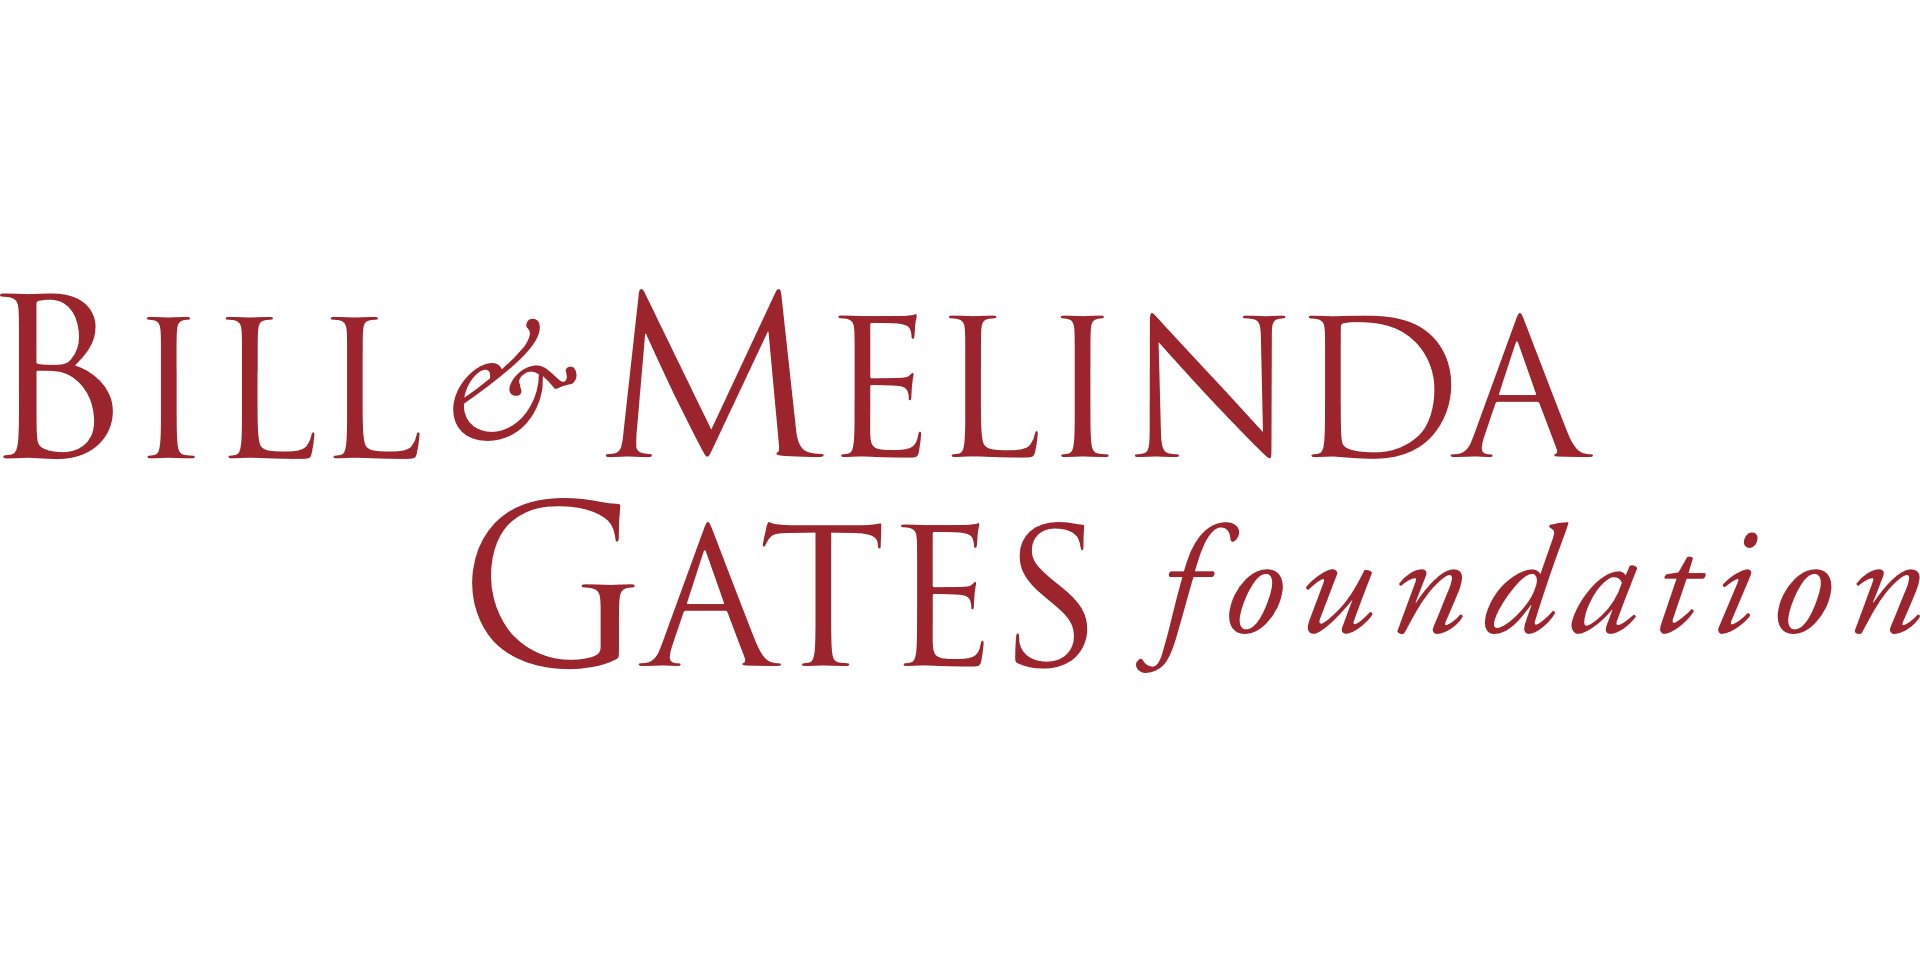 The Bill & Melinda Gates Foundation - BMGF.png